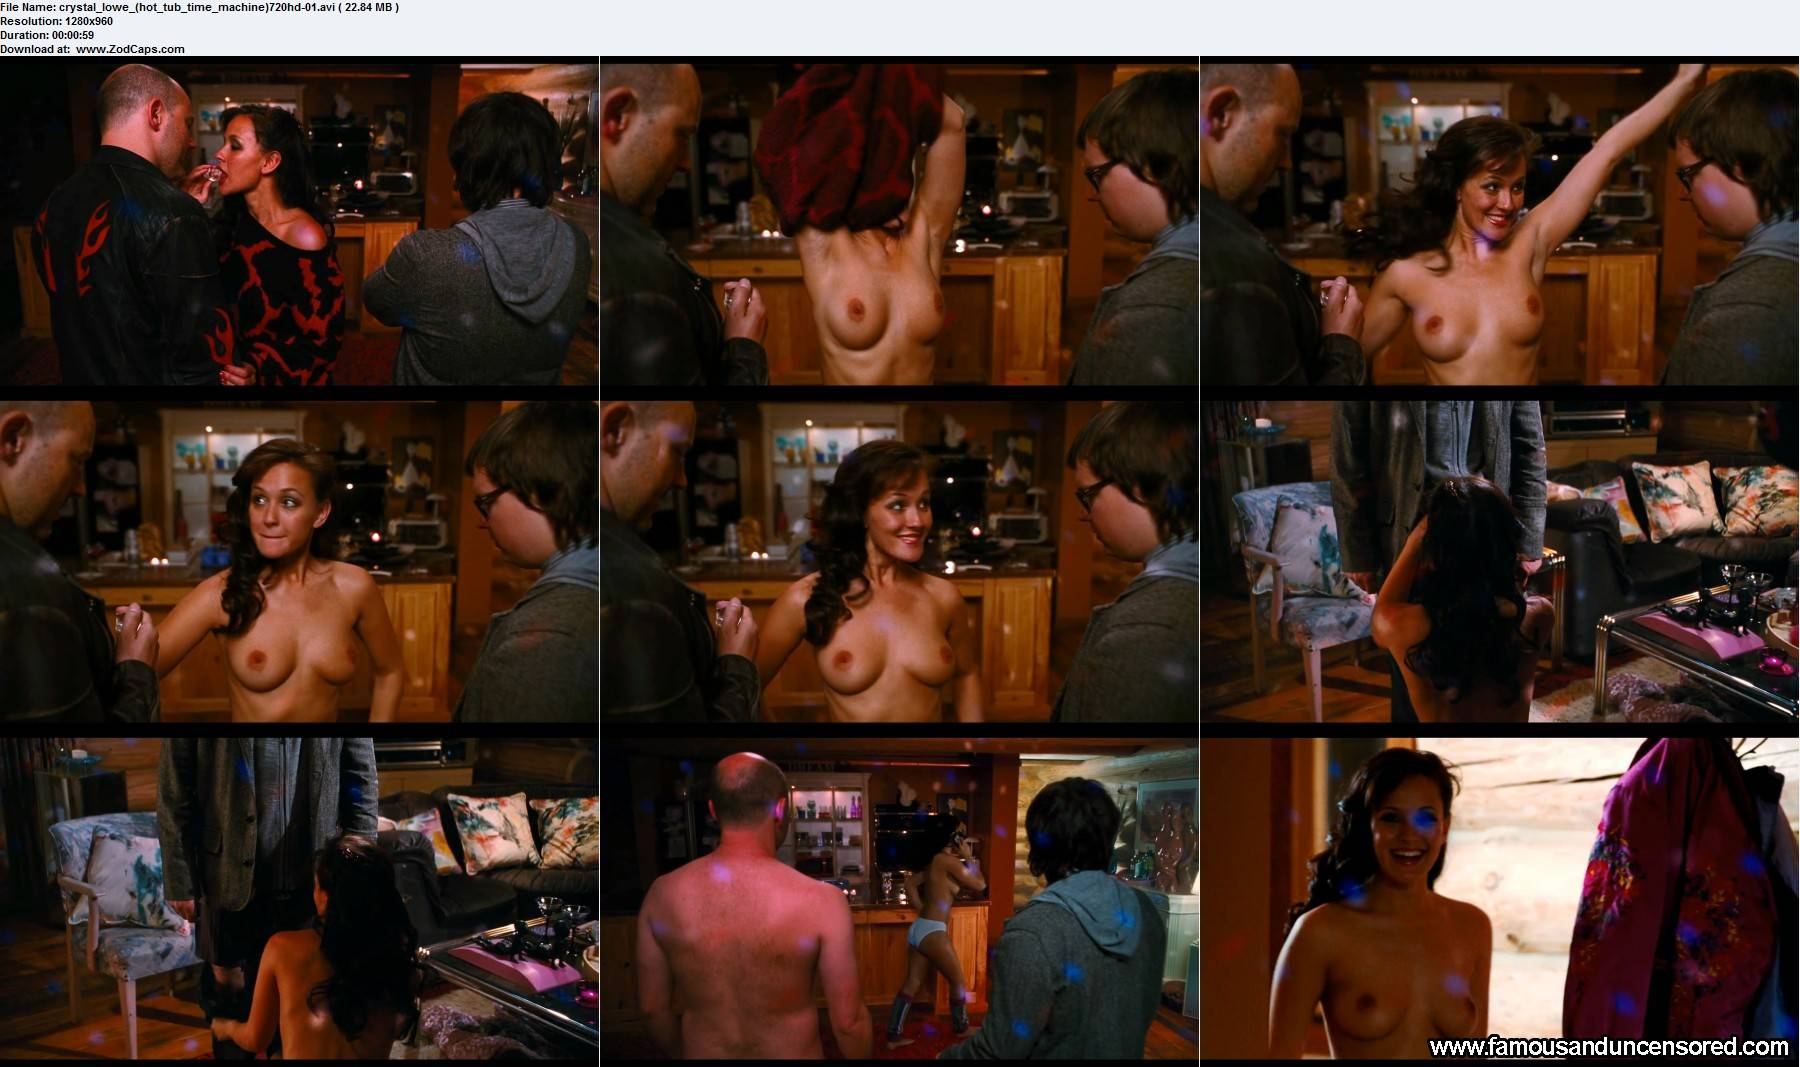 Crystal lowe hot tub time machine scene there